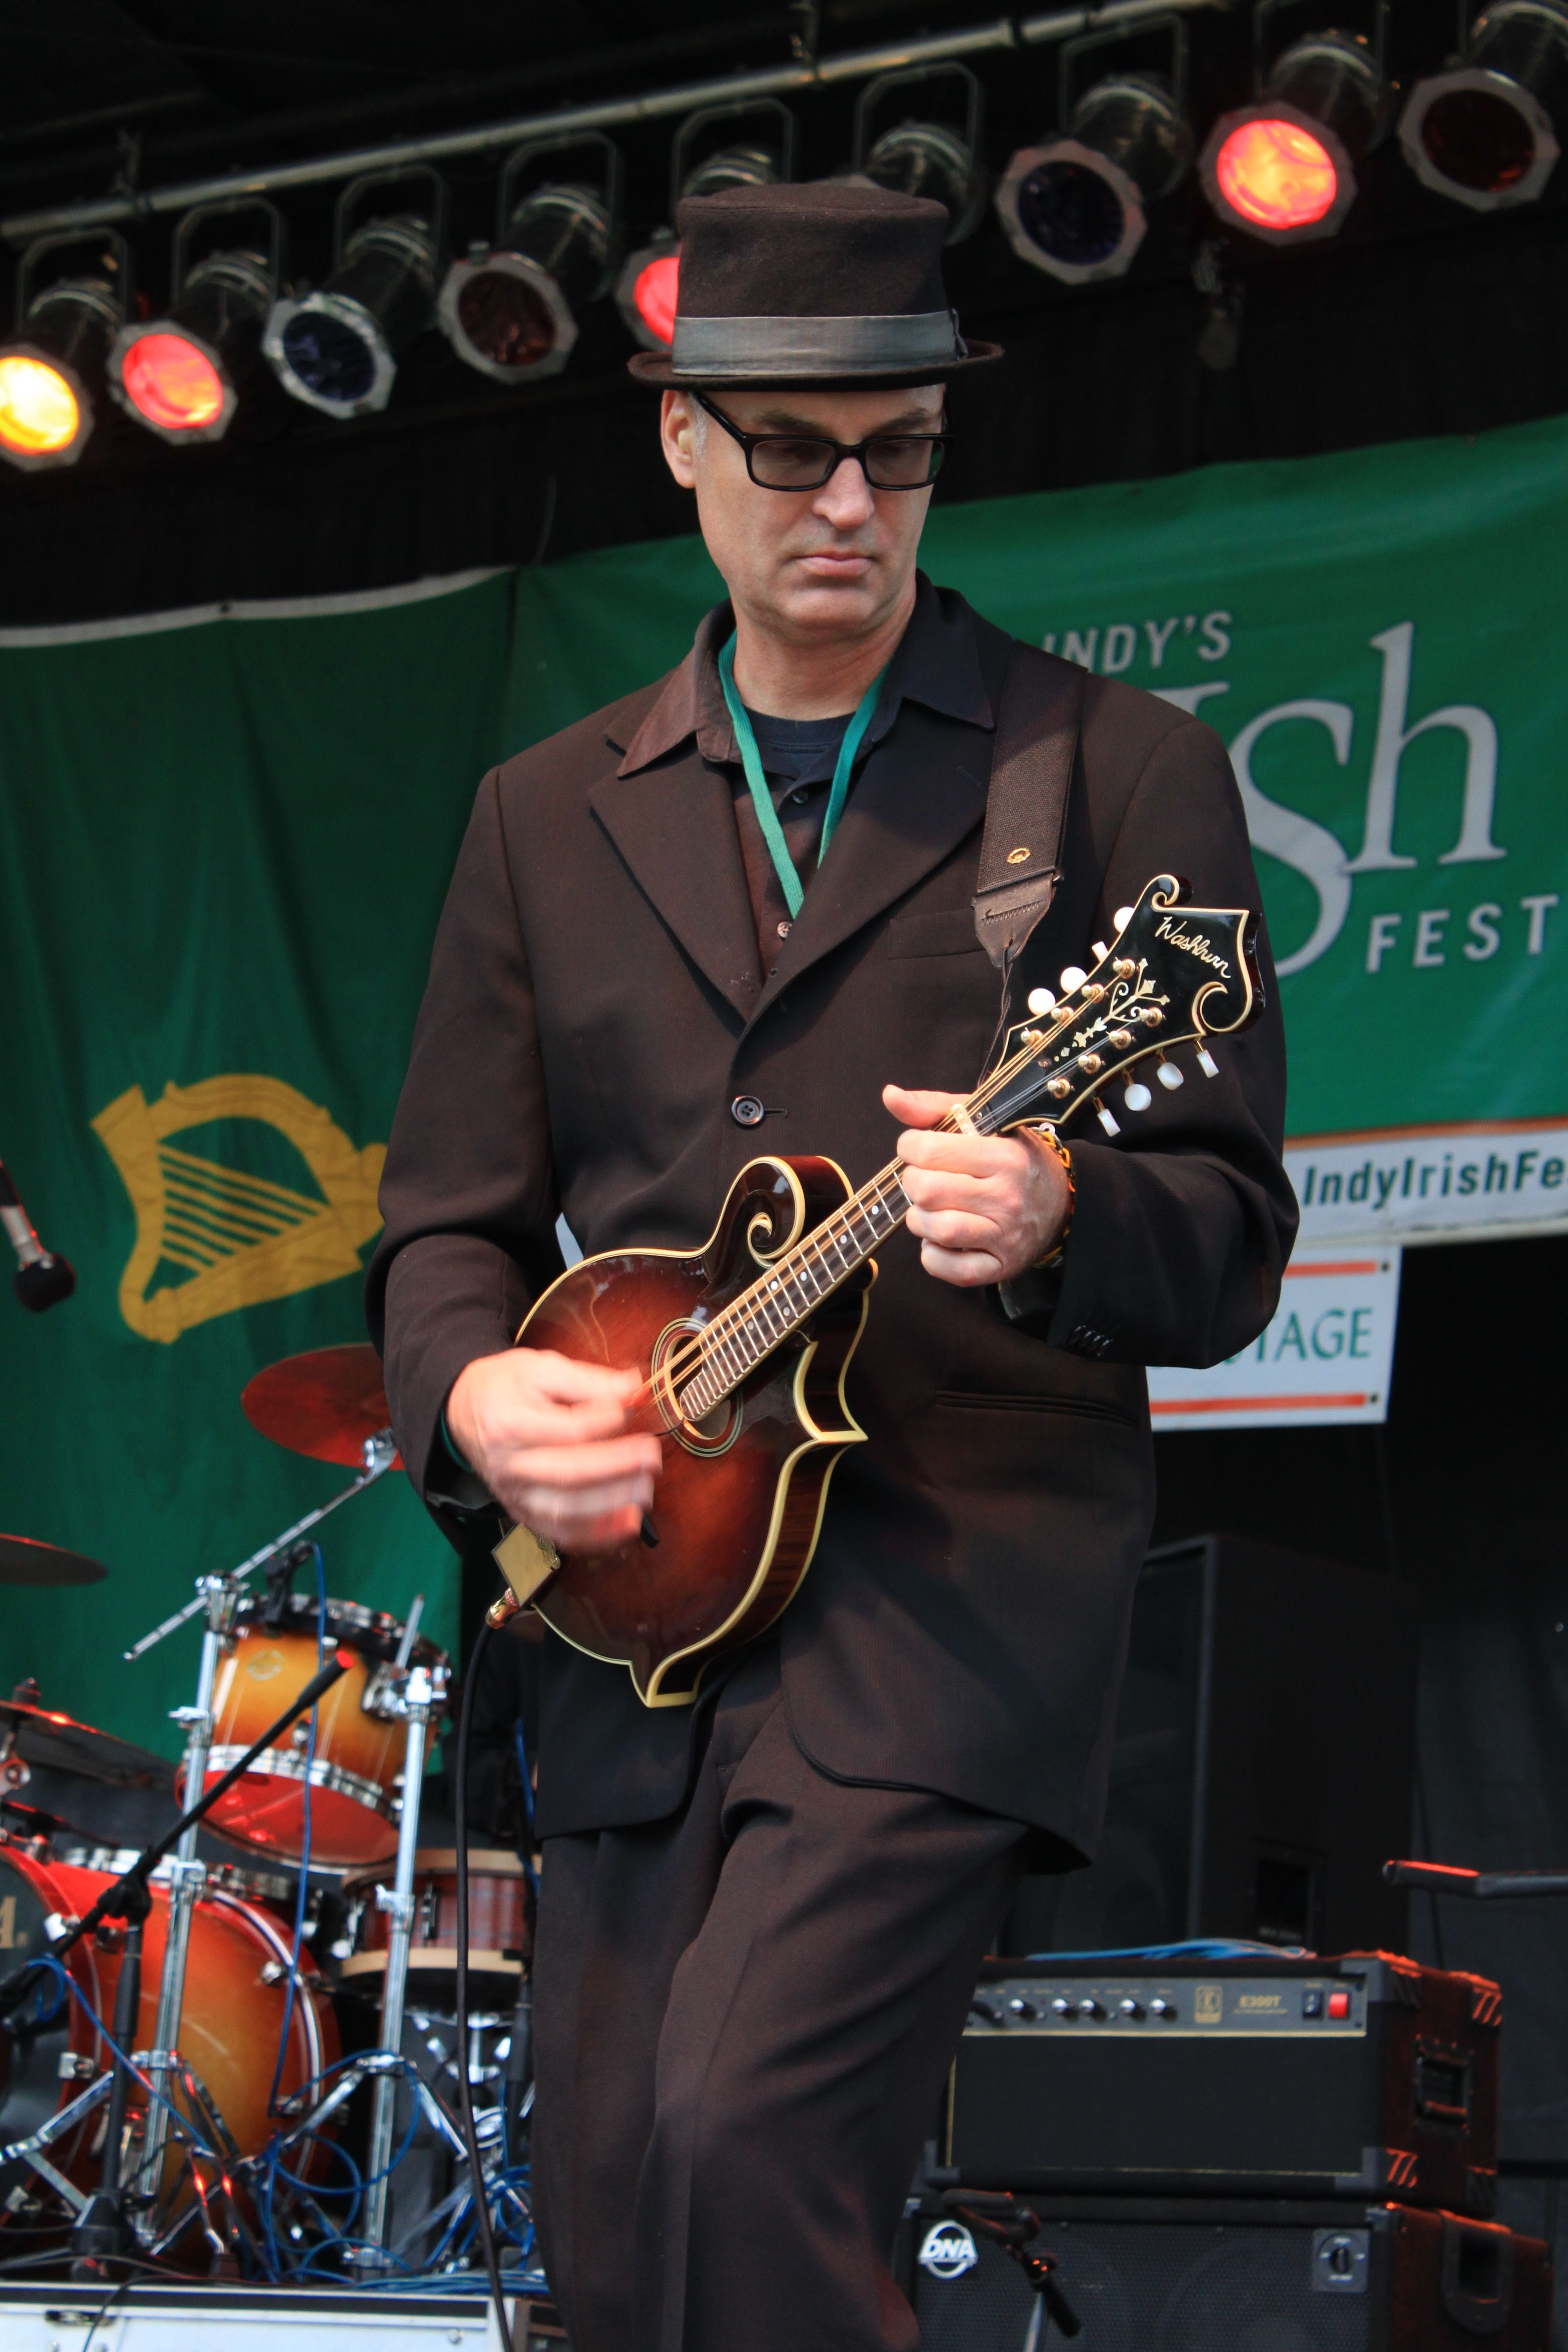 Cassanelli mobili ~ Kevin flynn and avondale ramblers 19th annual indy irish fest